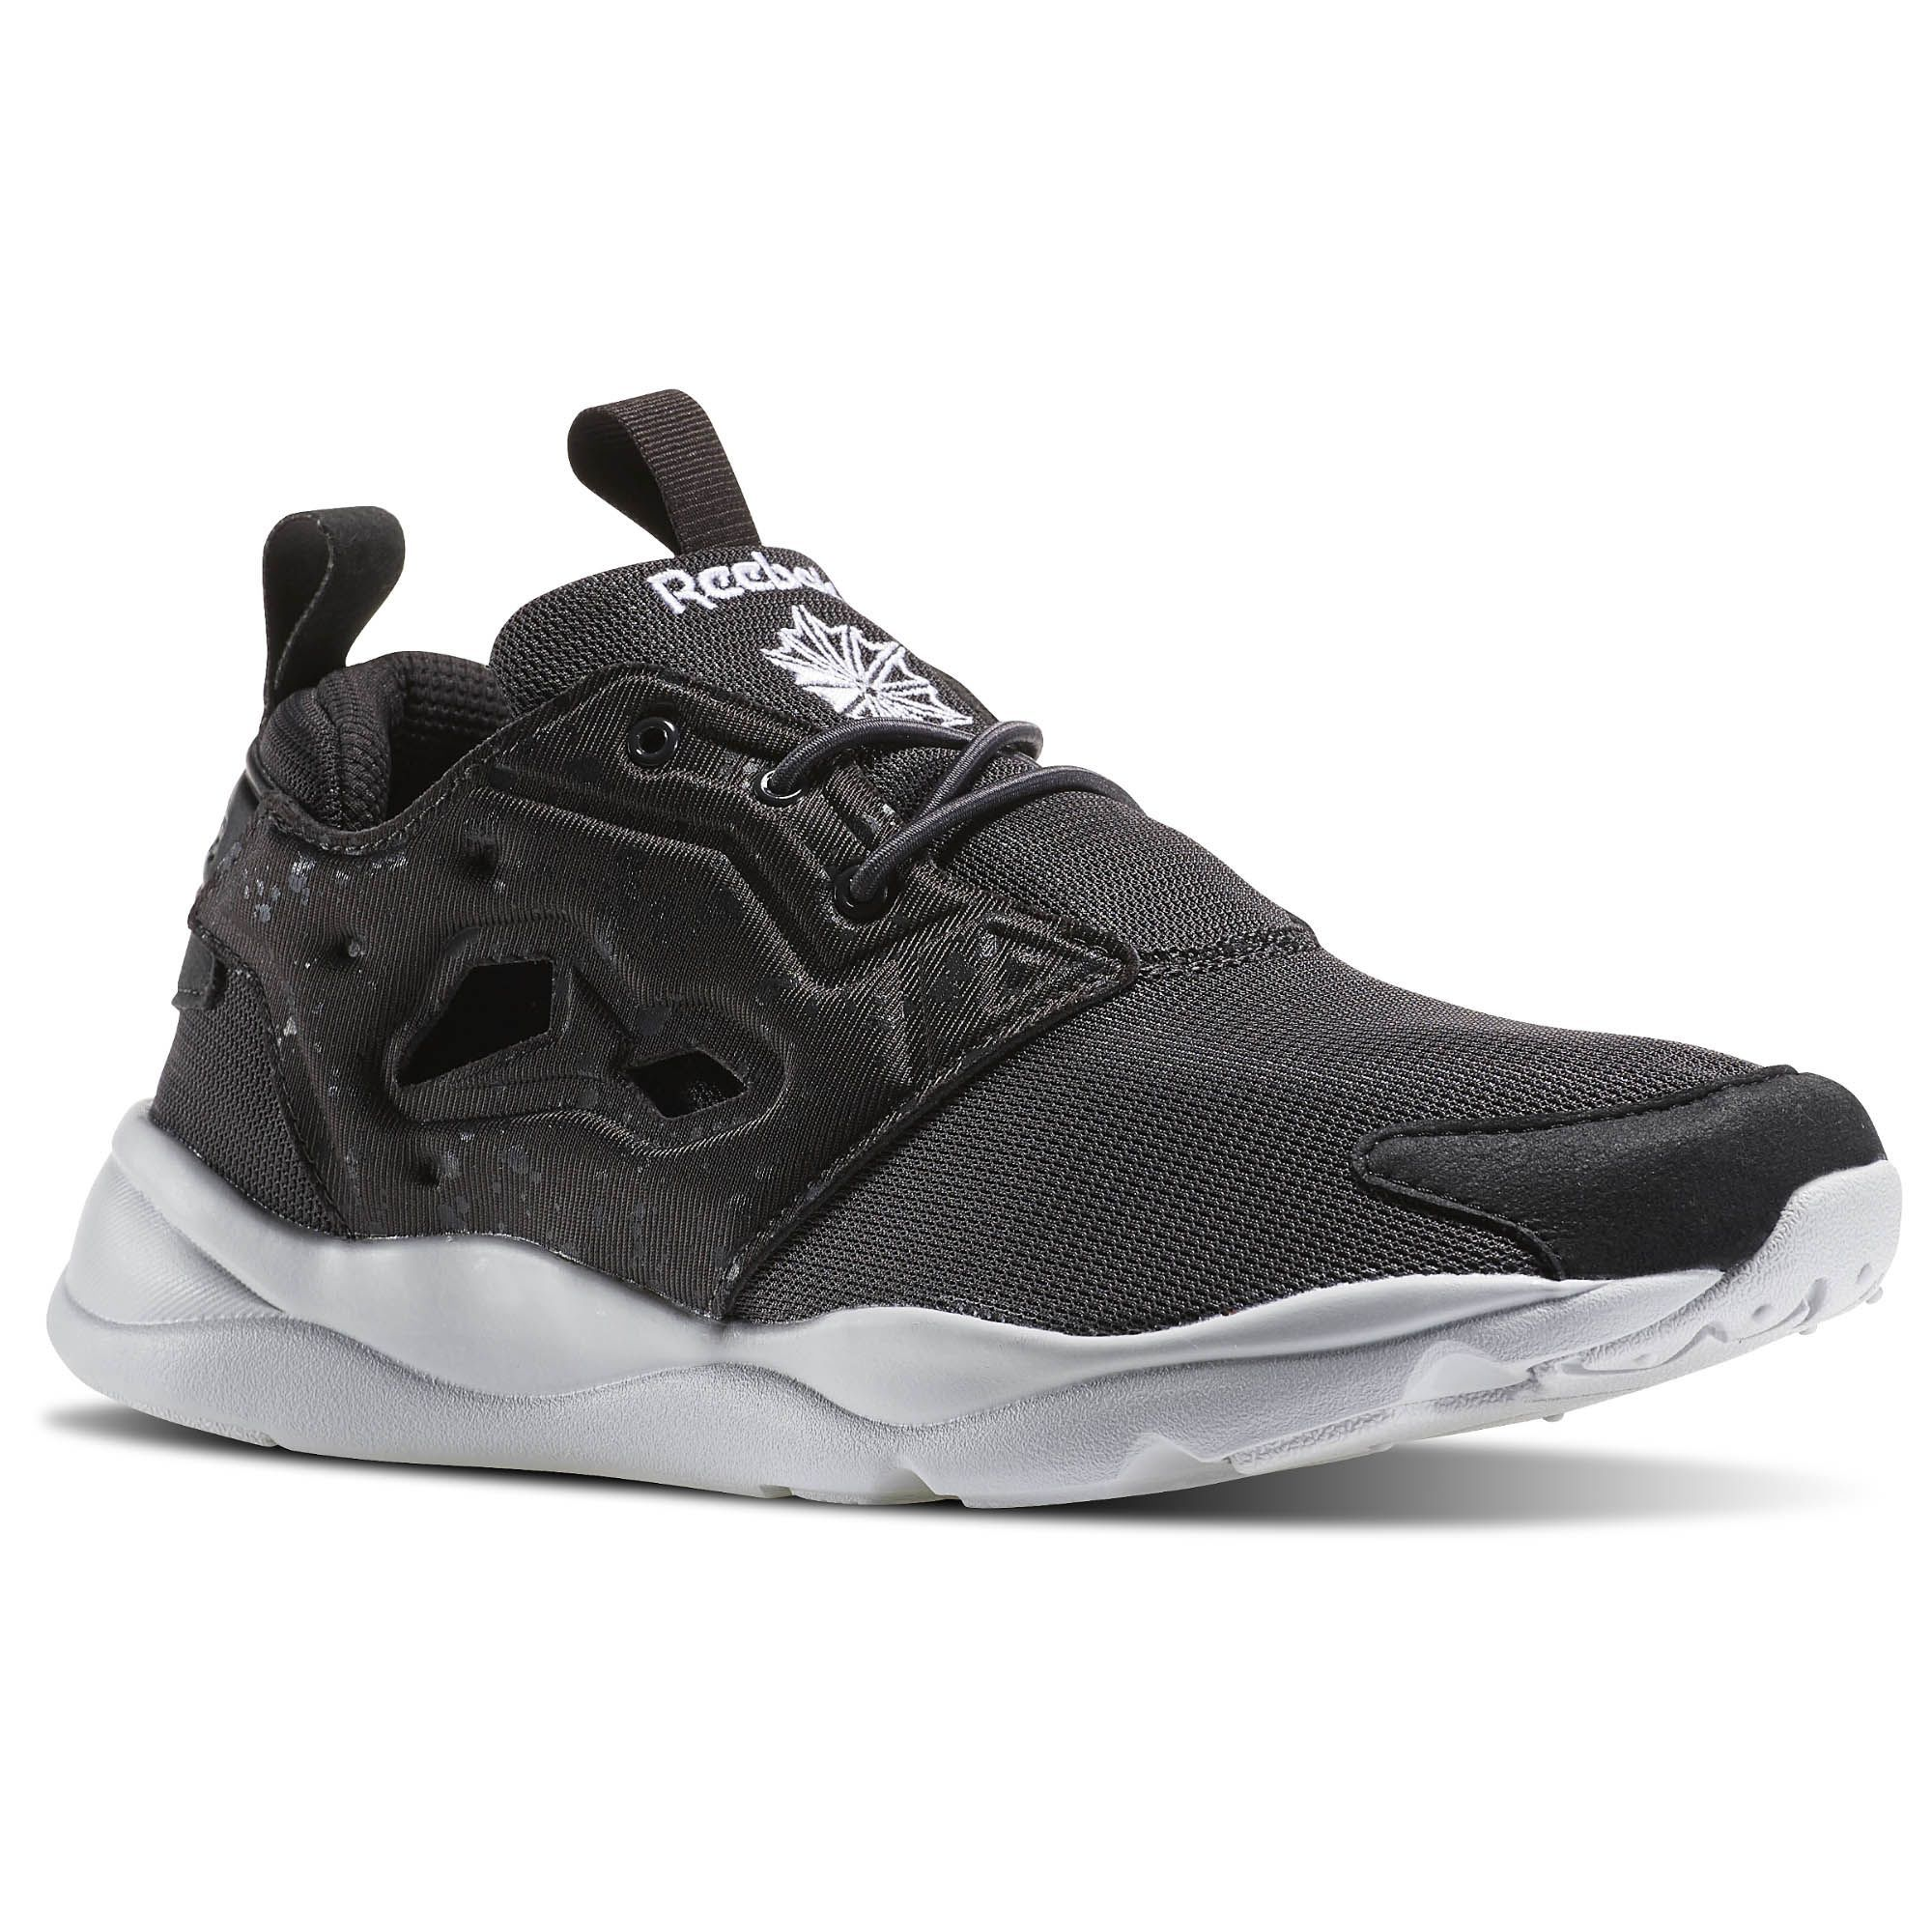 Reebok FURYLITE SP | Fashion | Pinterest | Reebok, Tenis